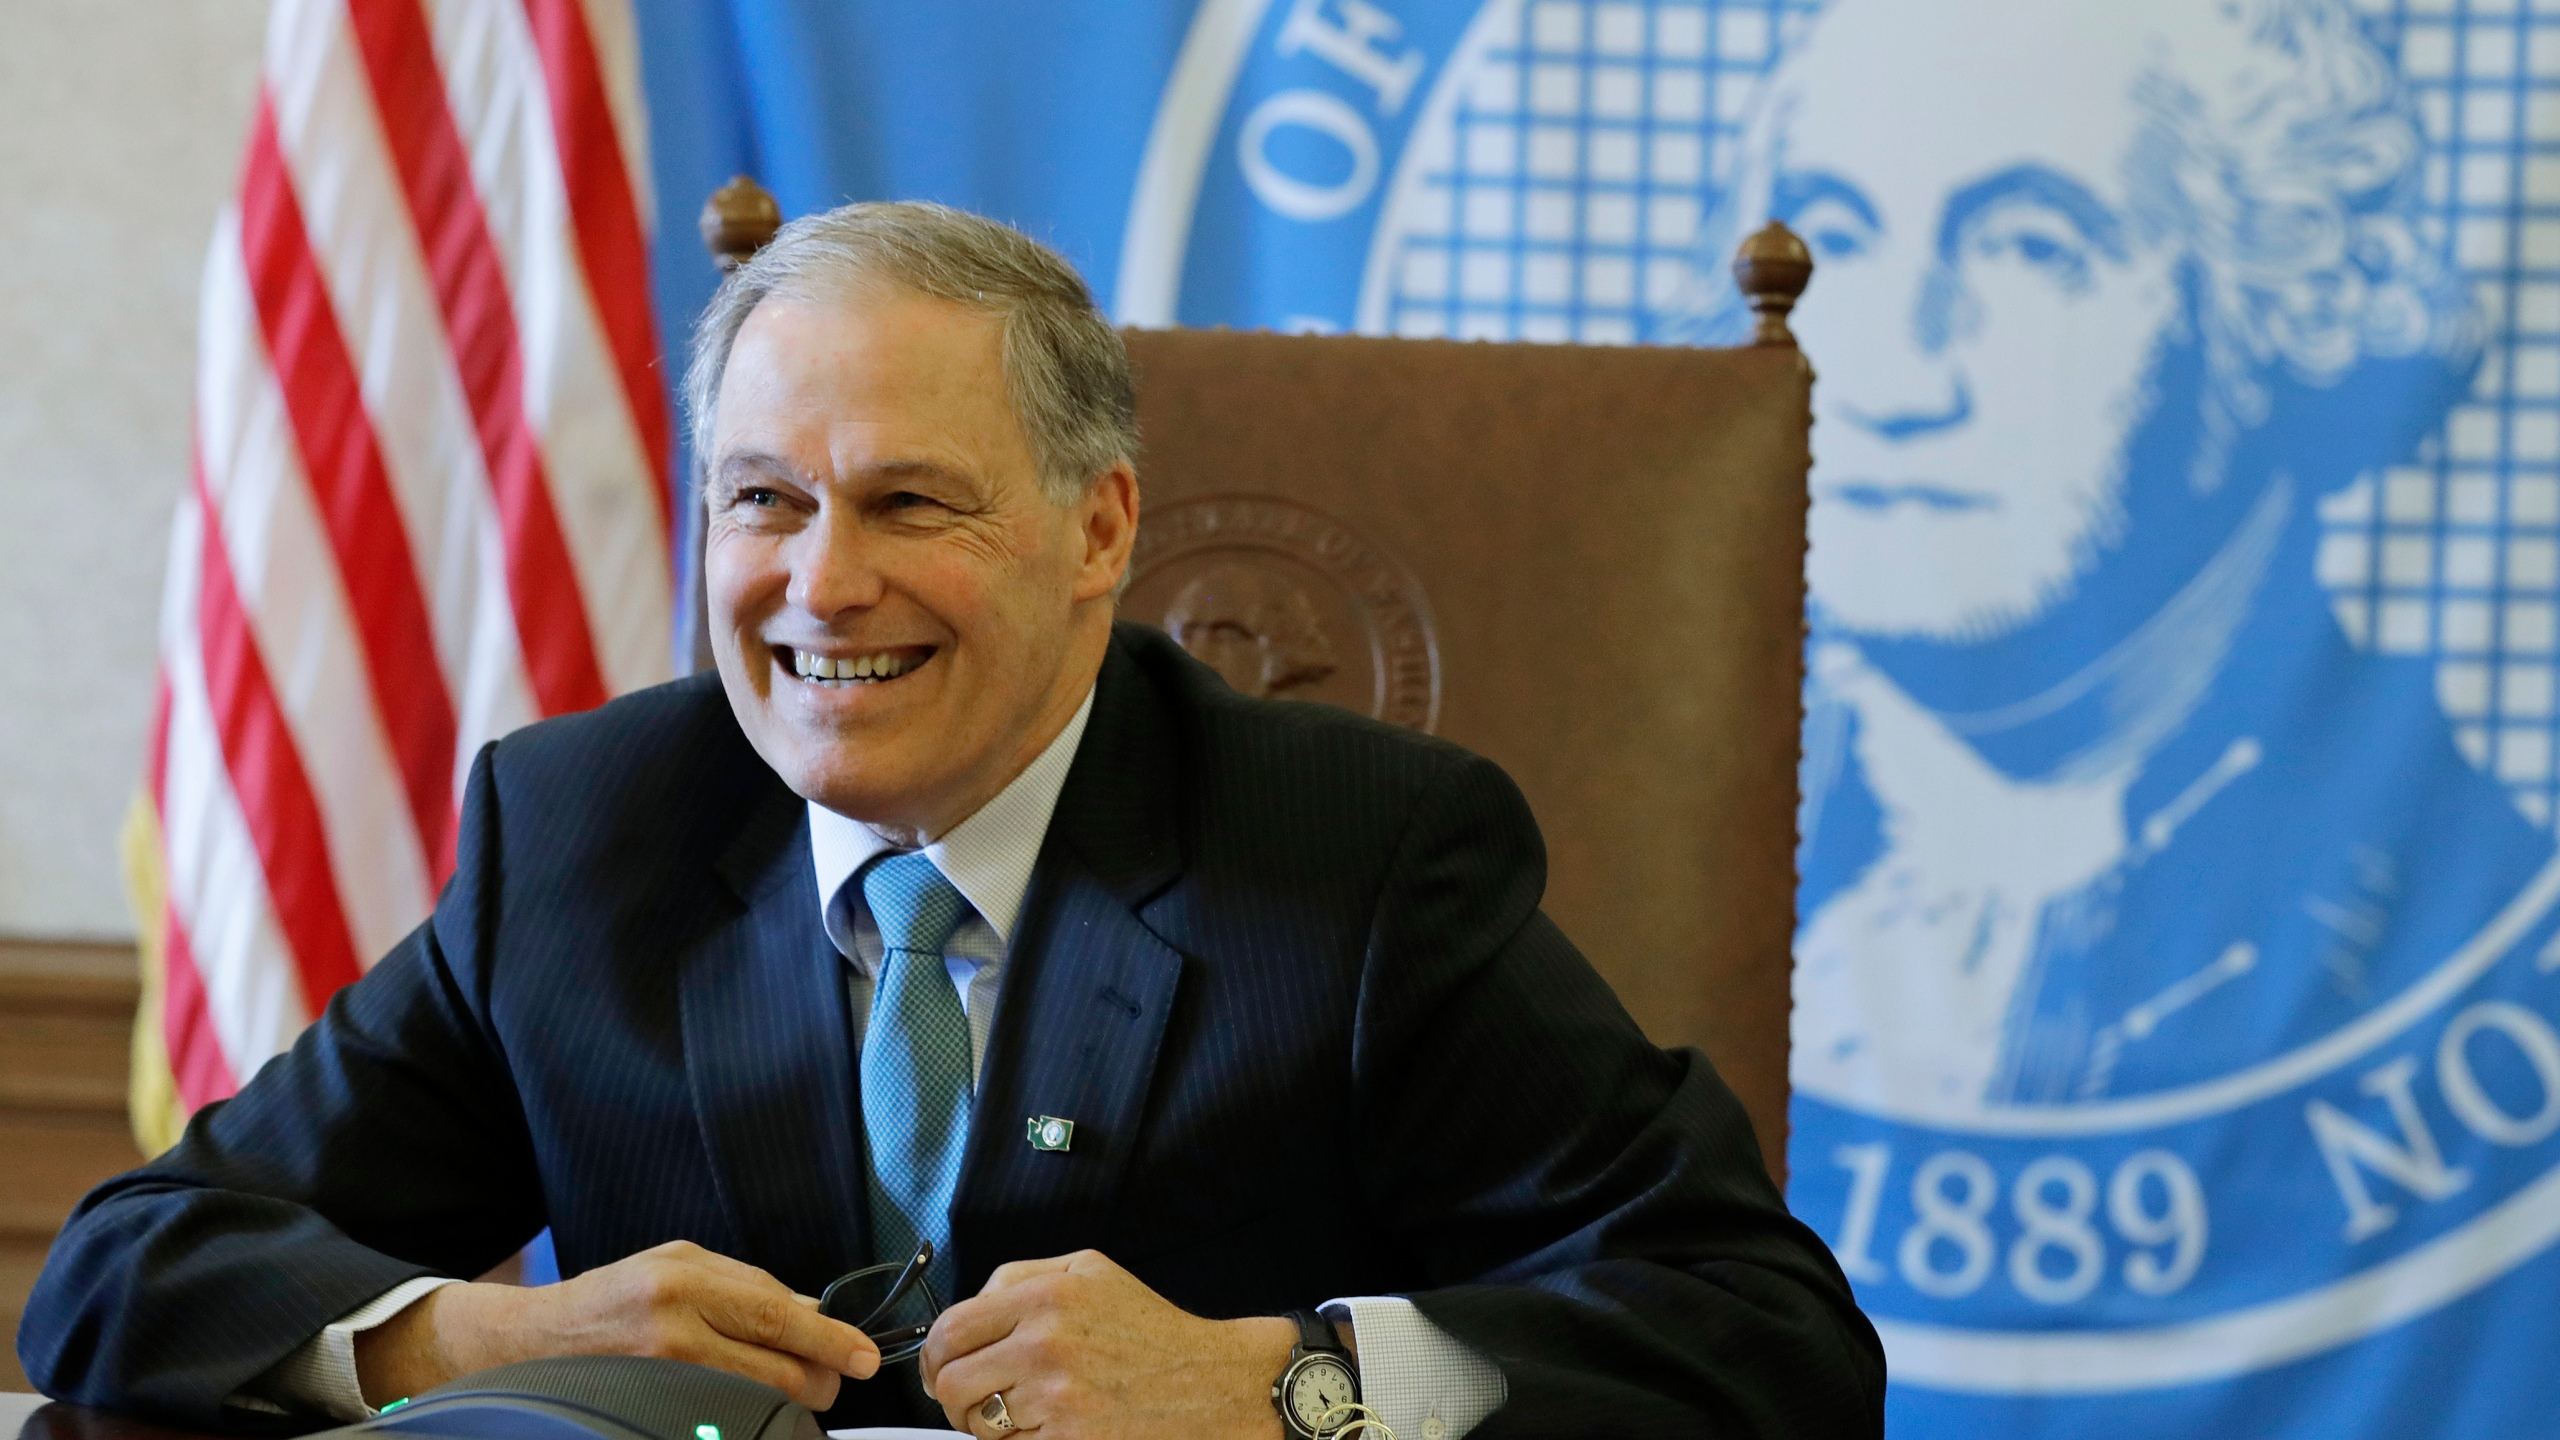 Election 2020 Inslee_1551466201169